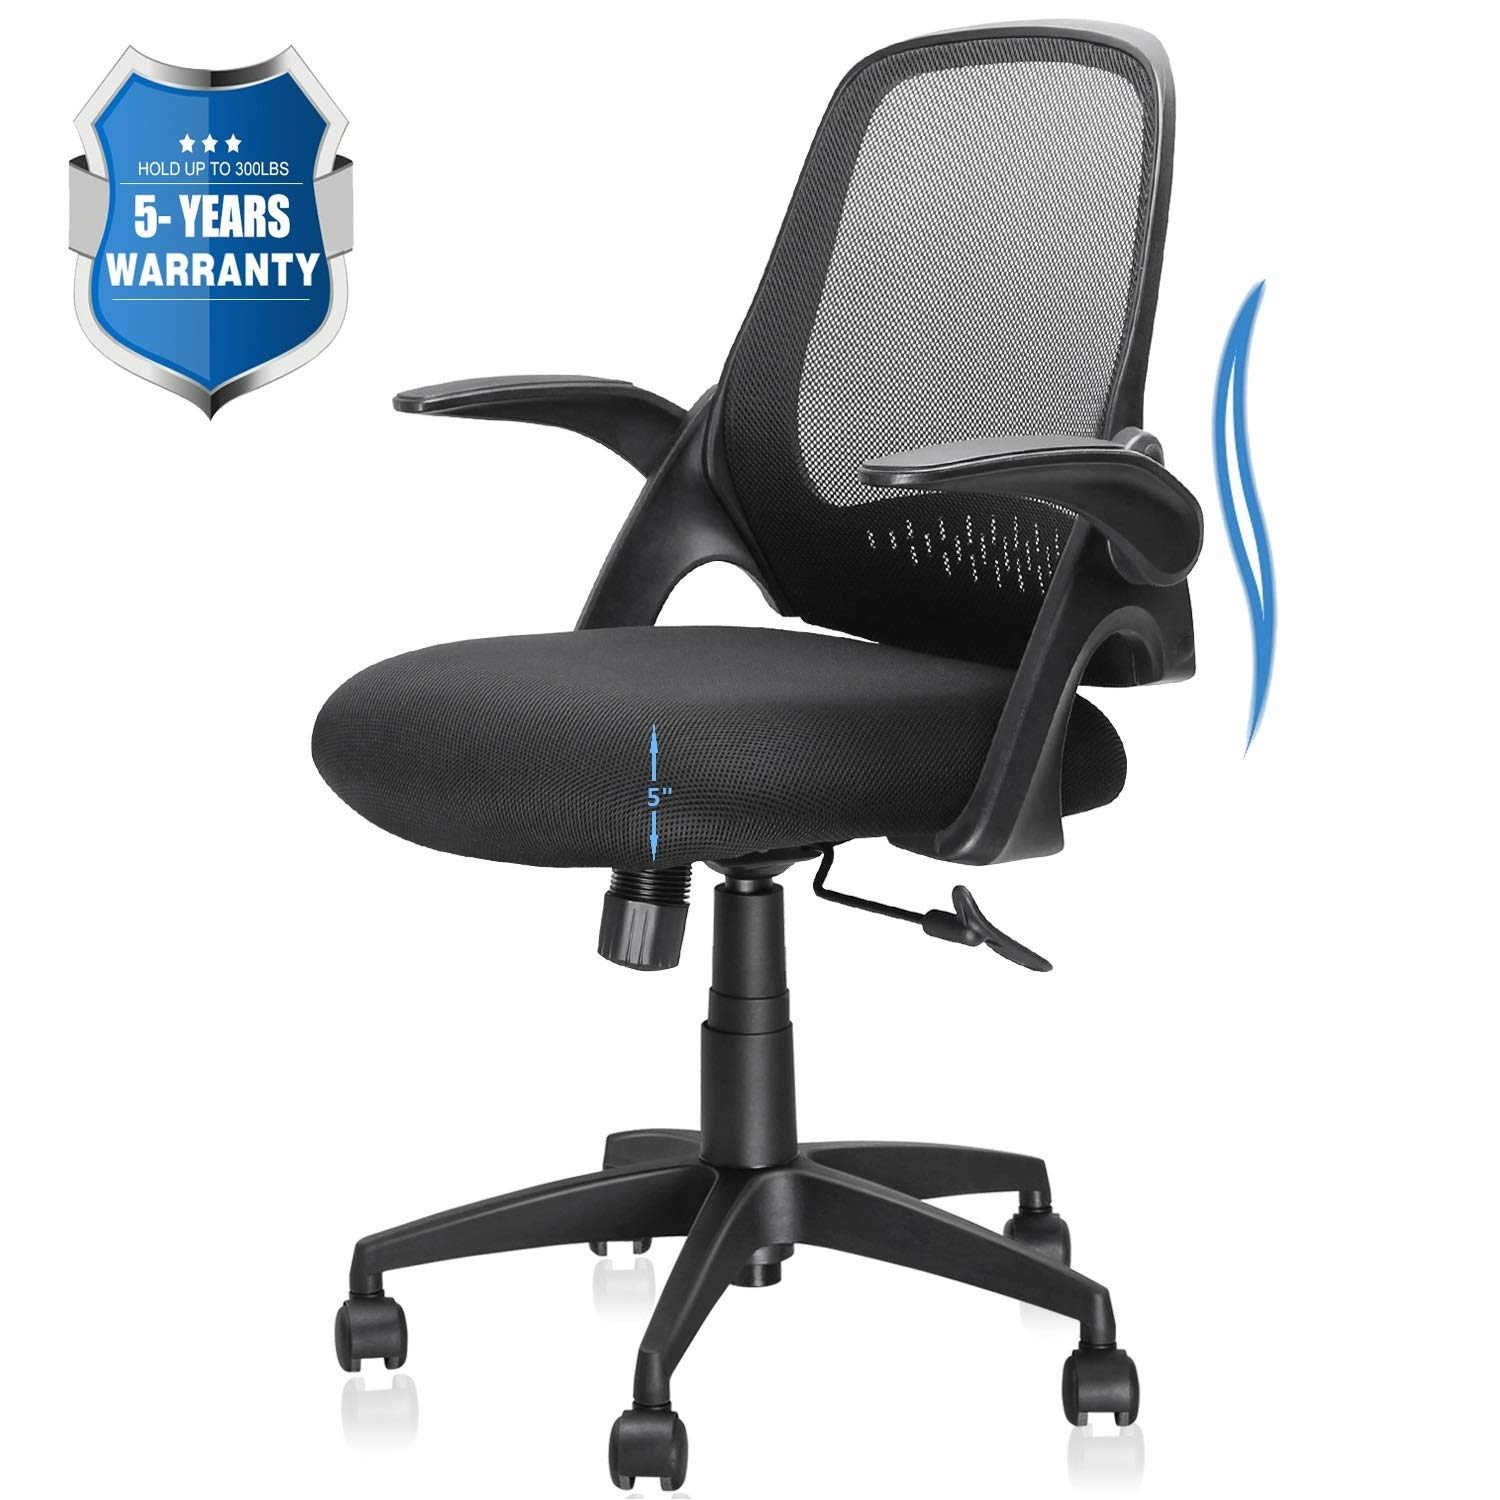 Office Chair, Computer Desk Chair with Ergonomic Back Support and Thick Cushion, Mid Back Task Chairs with Flip-up Arms, Hold up to 300LBS, 5-Years Warranty (Mid-Back, Black) by Ergousit